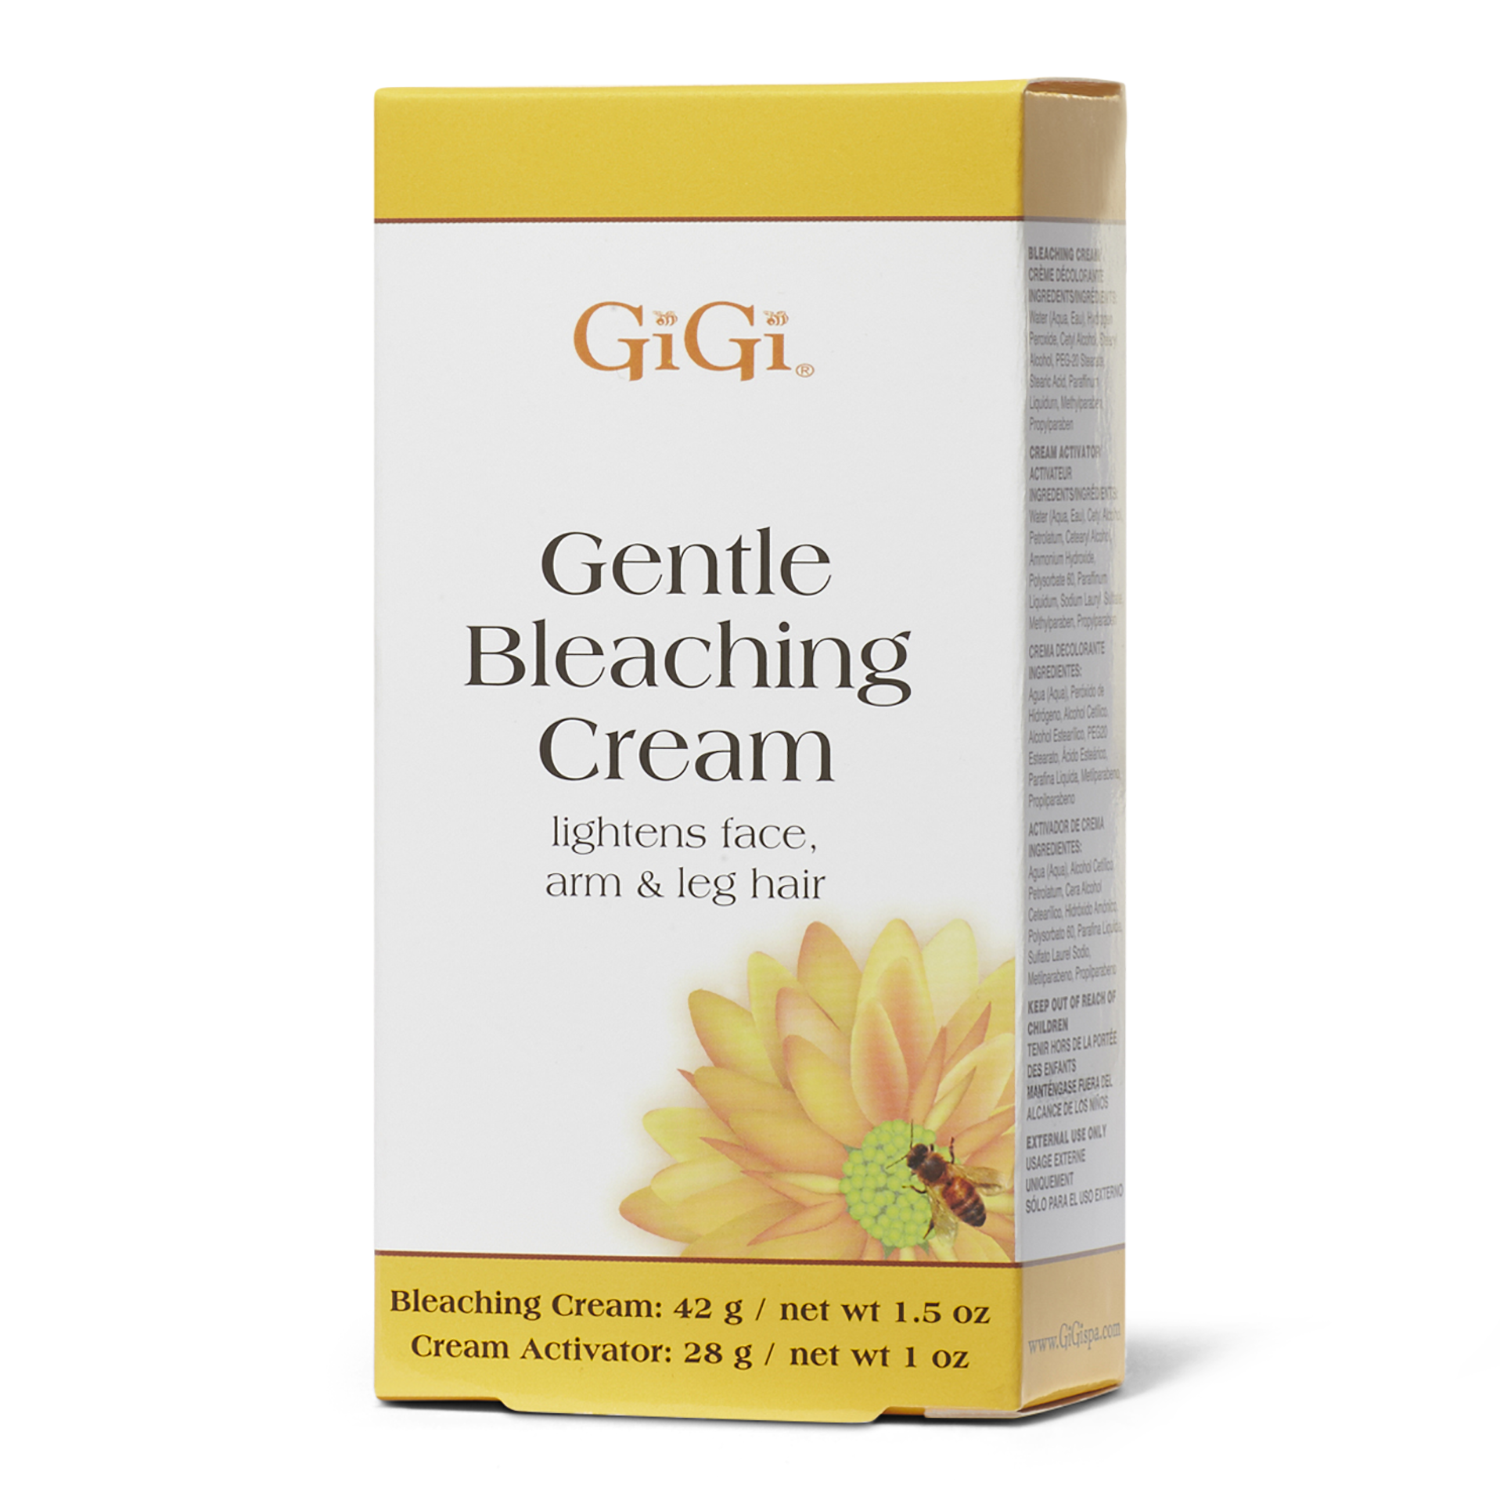 gigi gentle bleaching cream